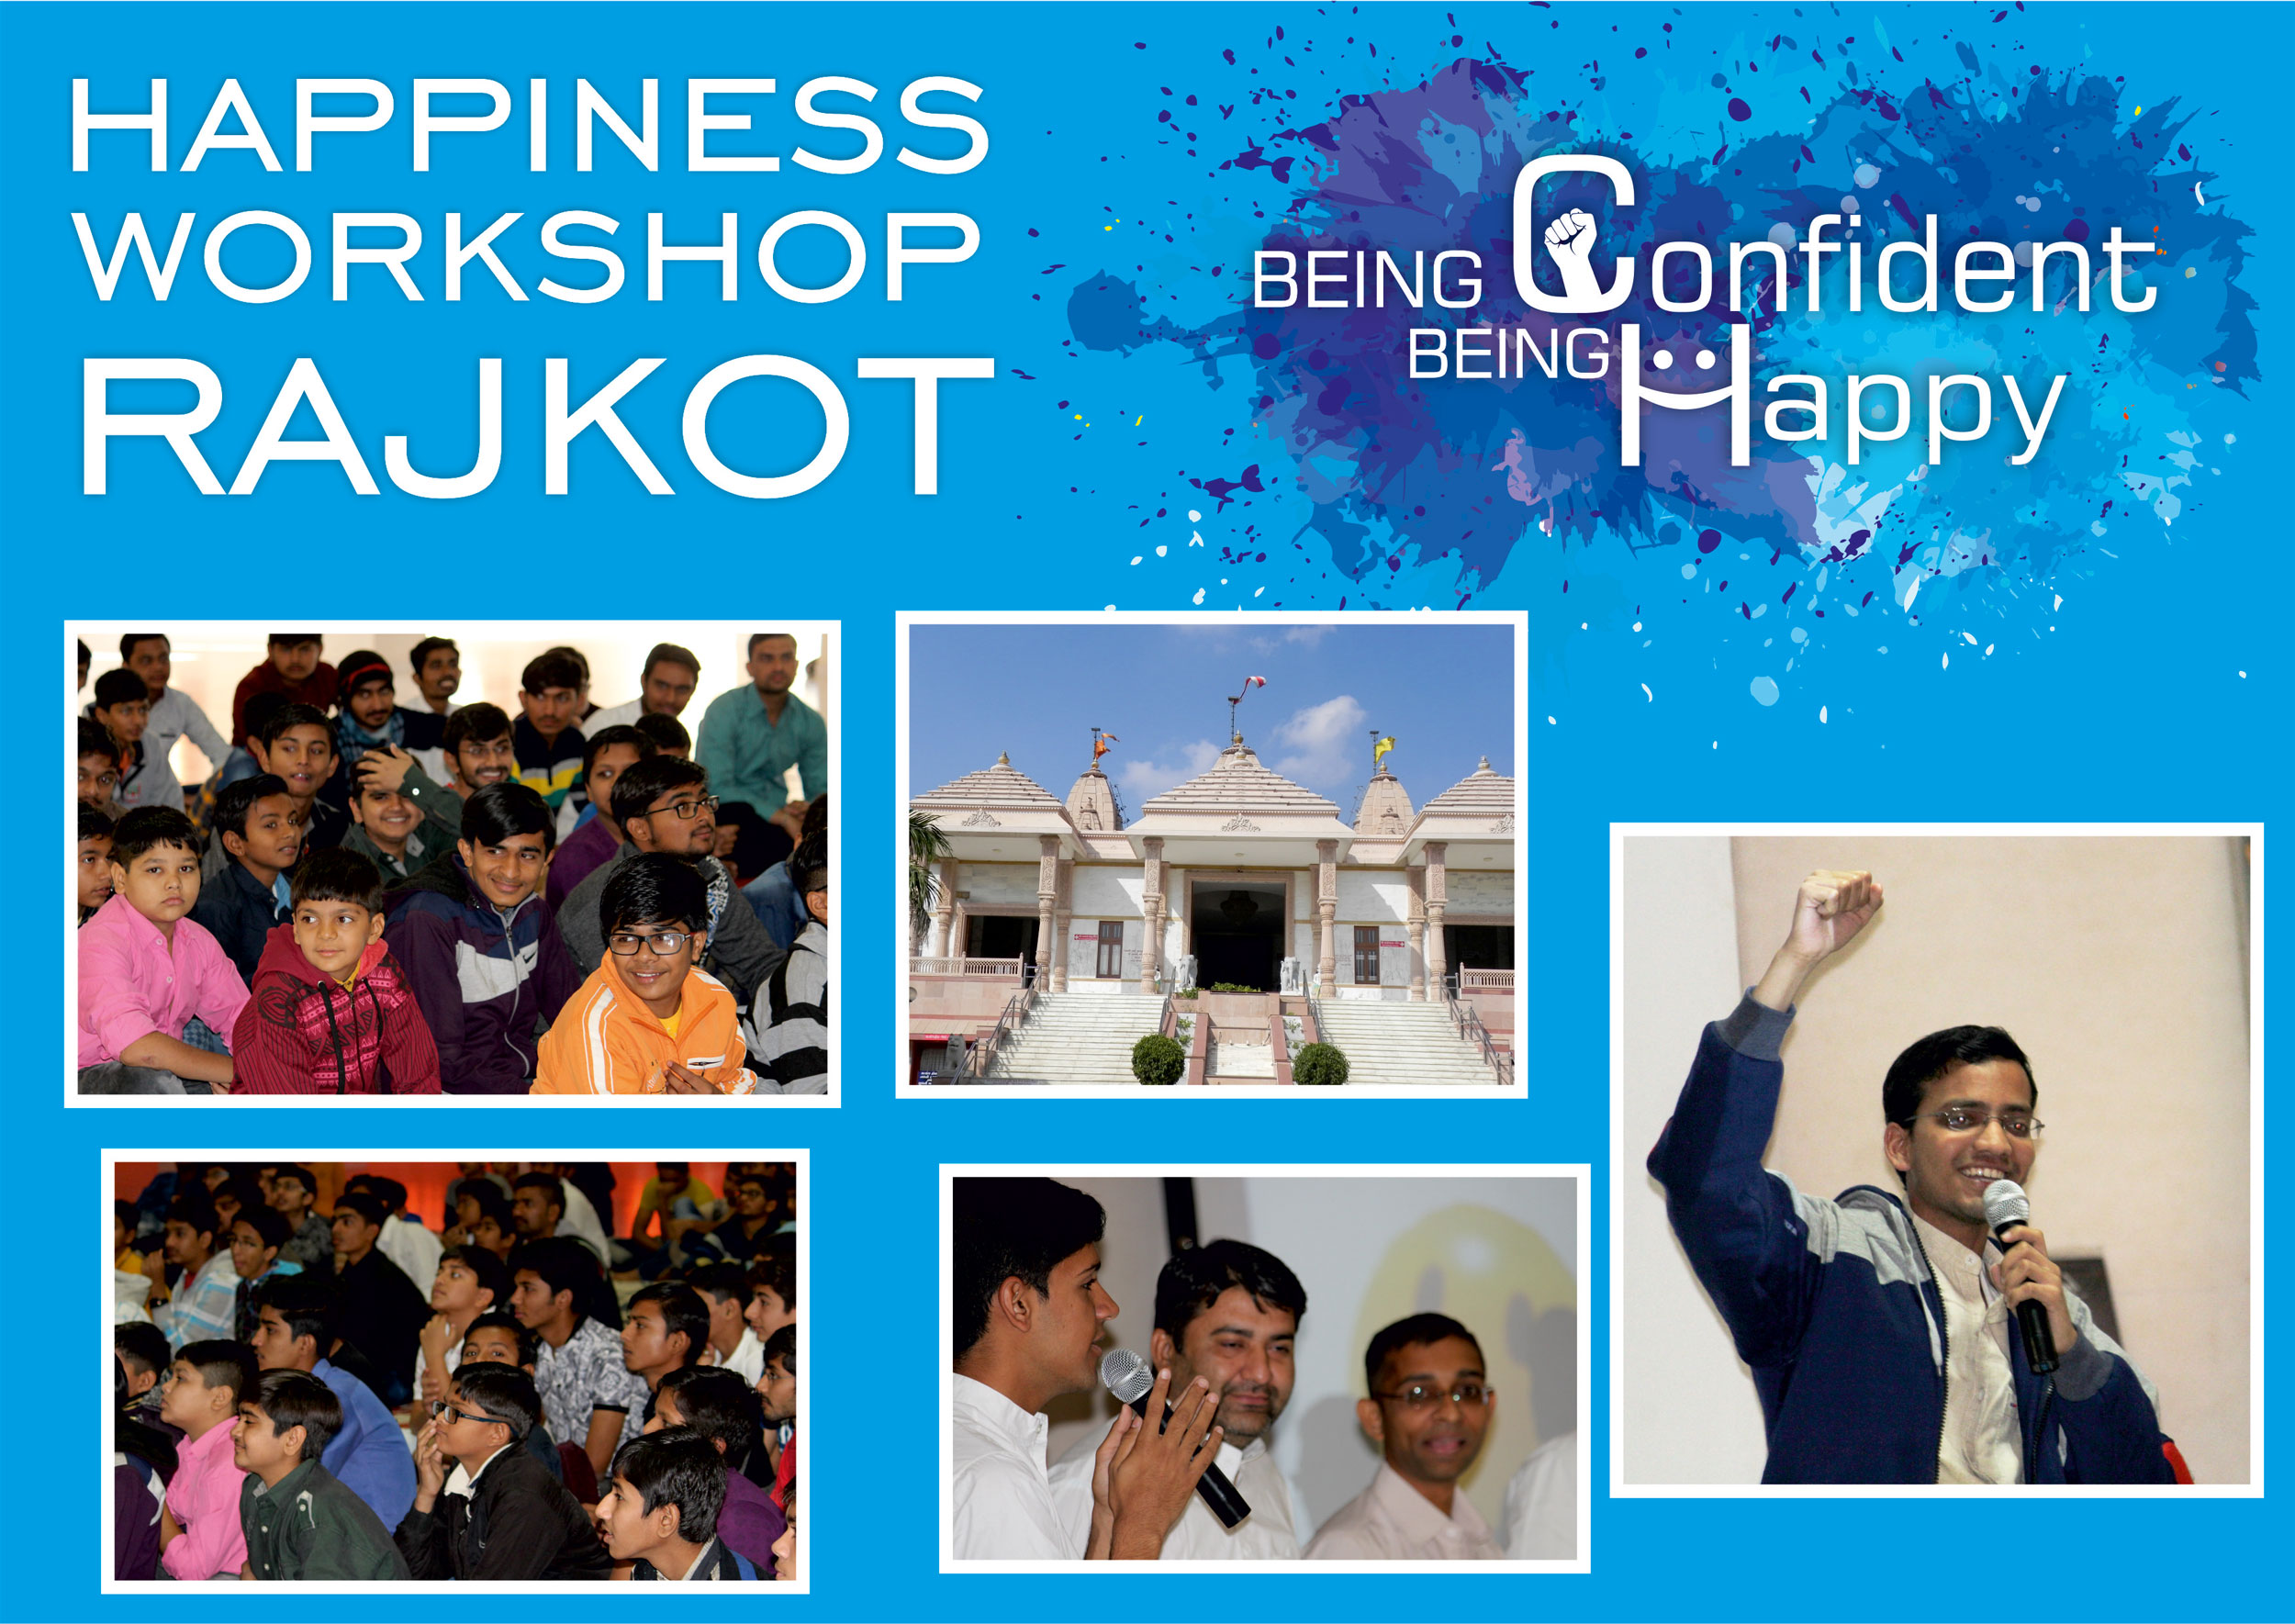 Happiness Workshop Rajkot